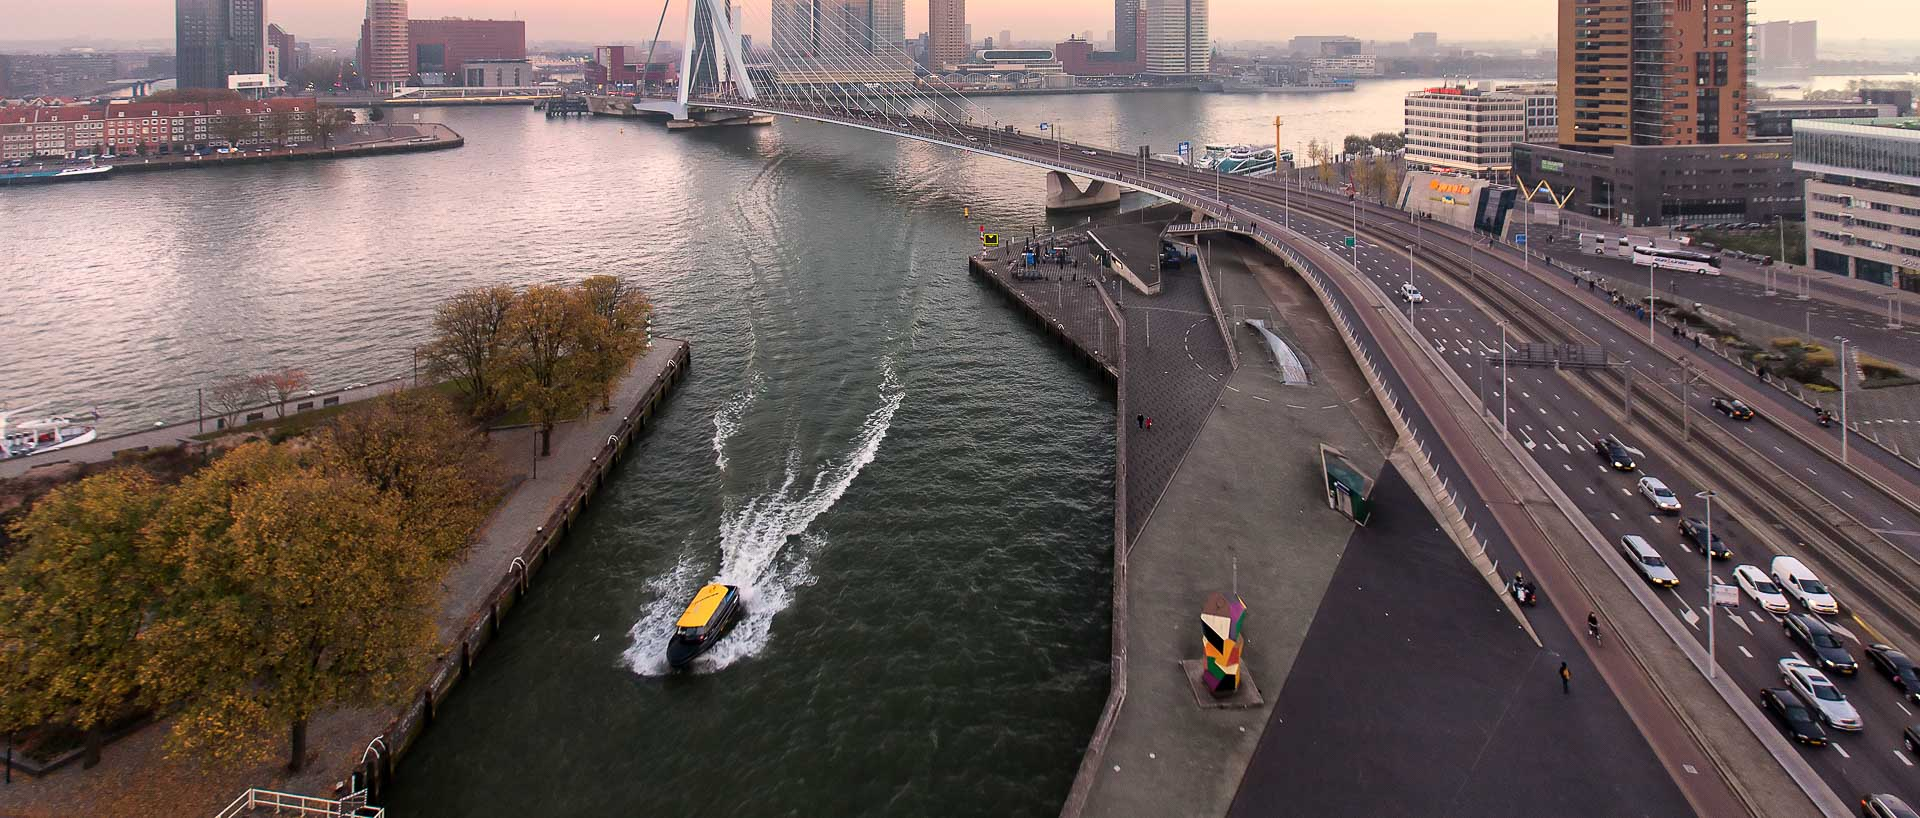 Rotterdam boat on water